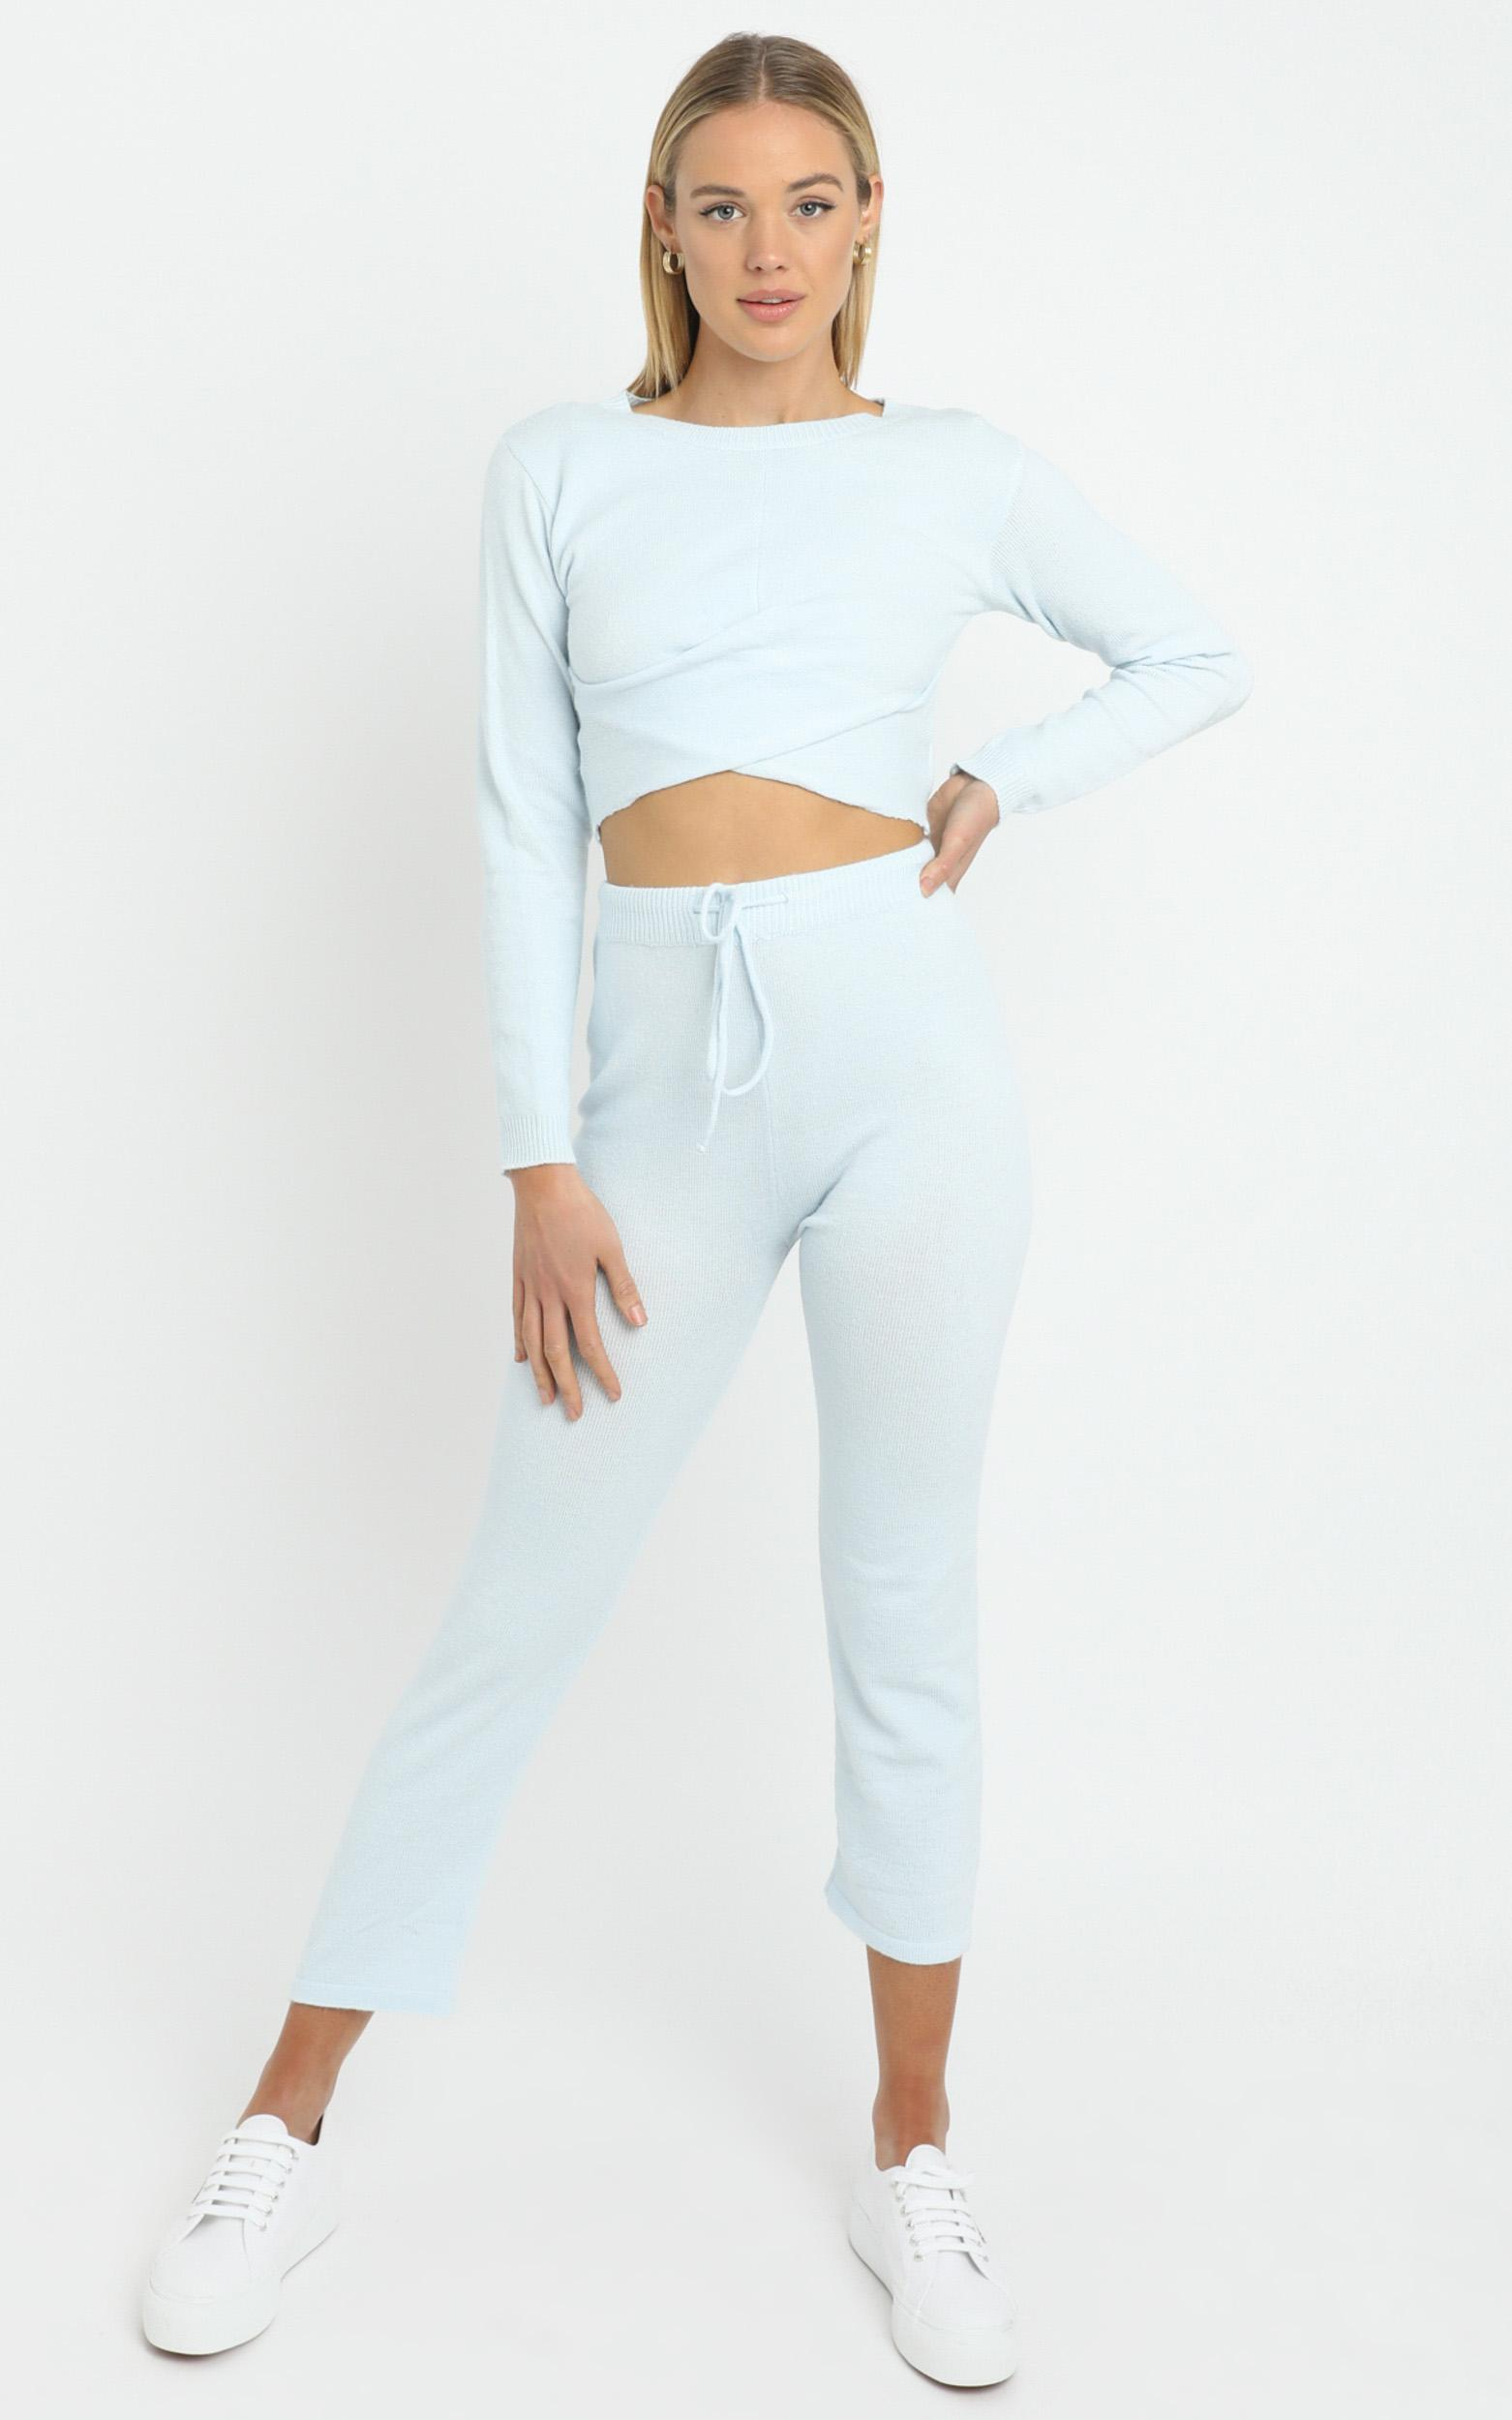 Deanna Knit Top in Baby Blue - L, Blue, hi-res image number null